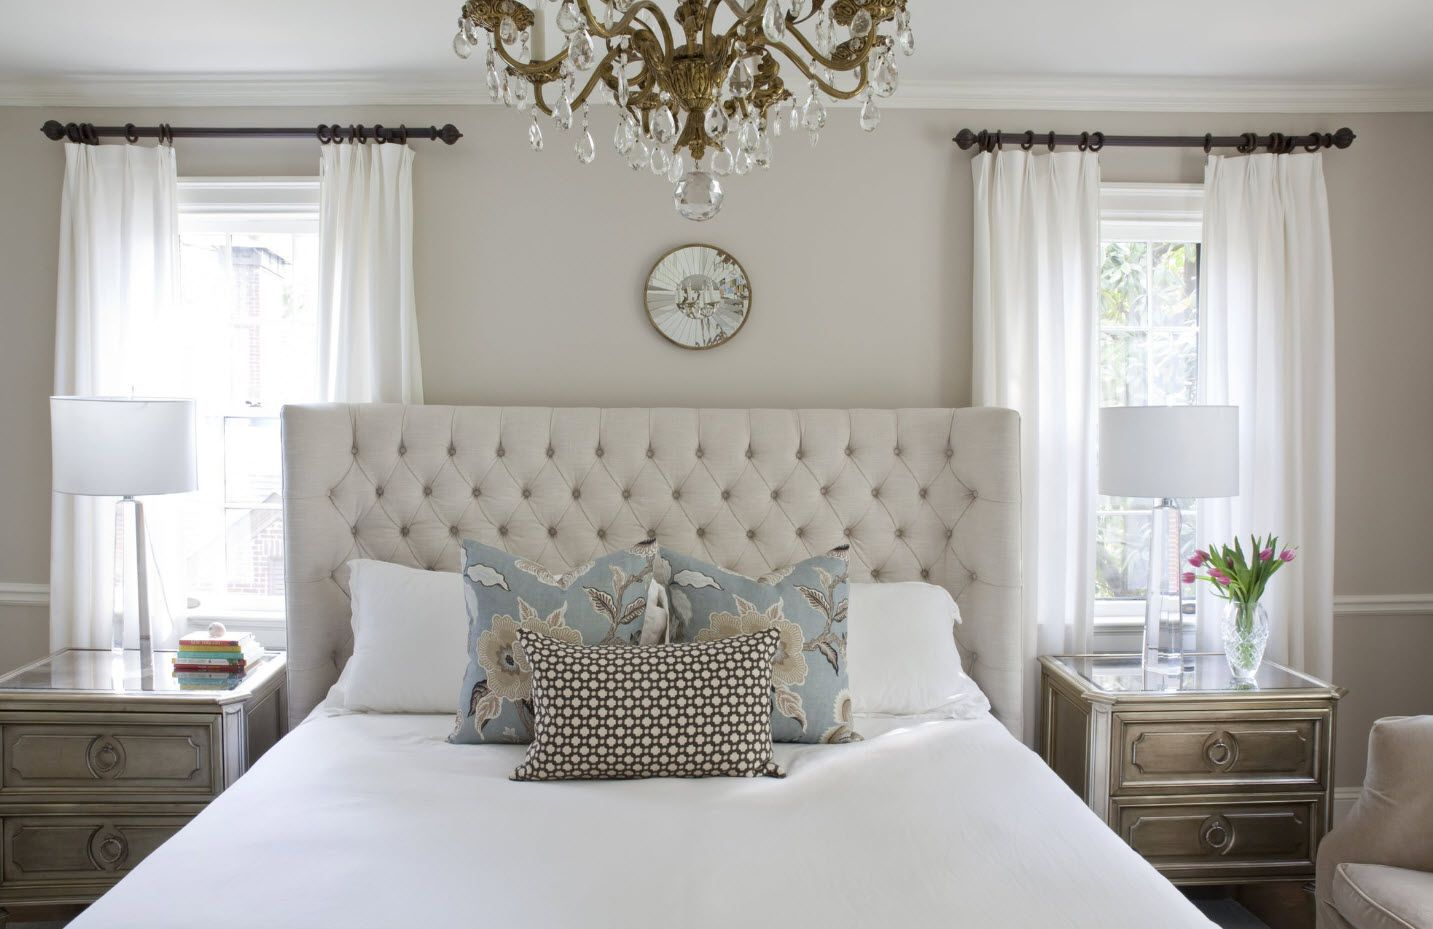 Modern Bedroom Interior Decoration & Design Ideas 2017. Quilted headboard and luxurious crystal chandelier